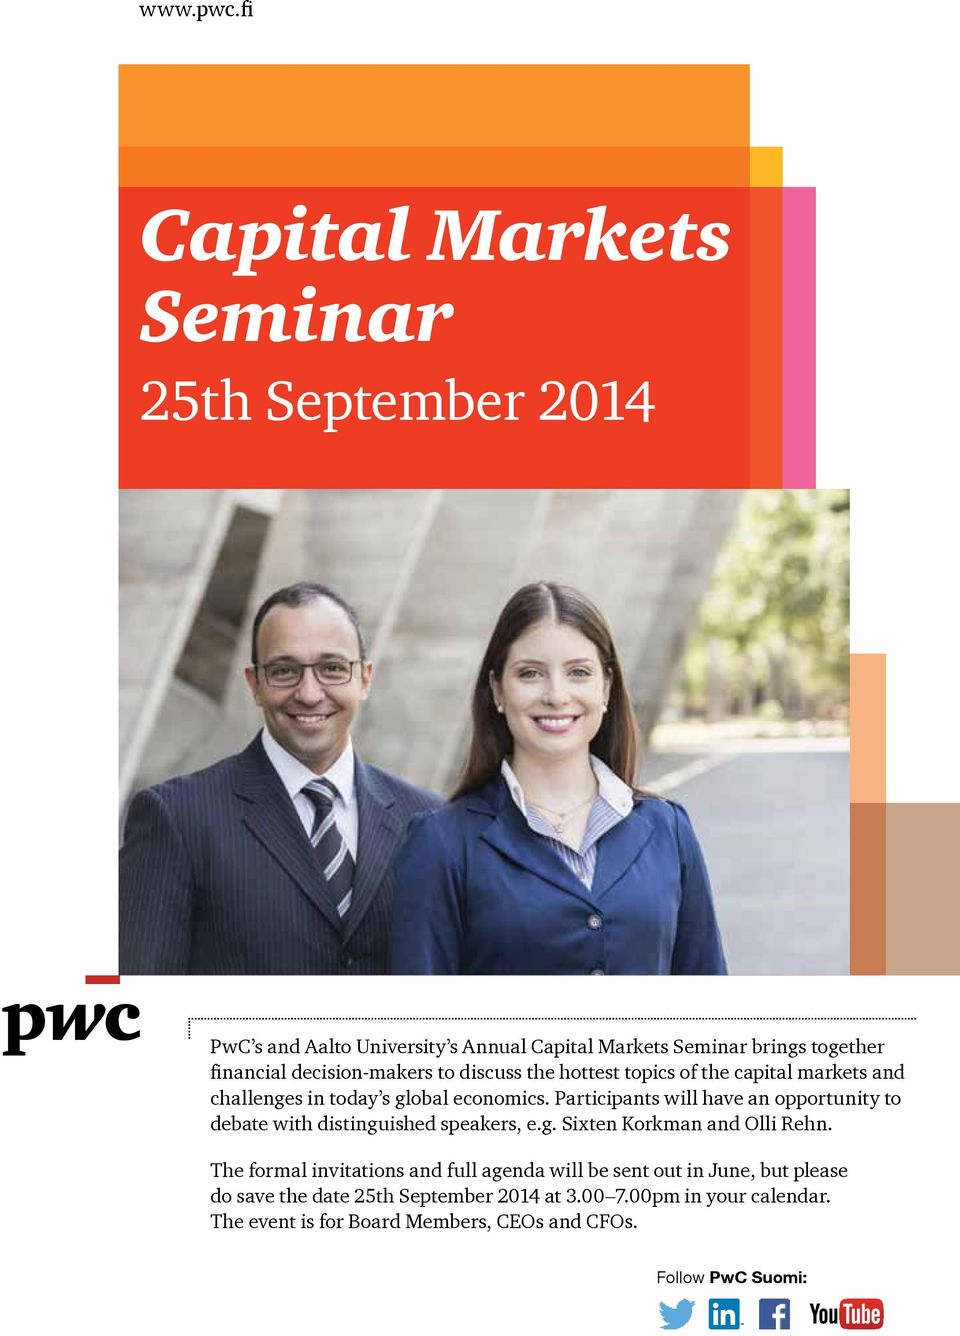 decision-makers to discuss the hottest topics of the capital markets and challenges in today s global economics.